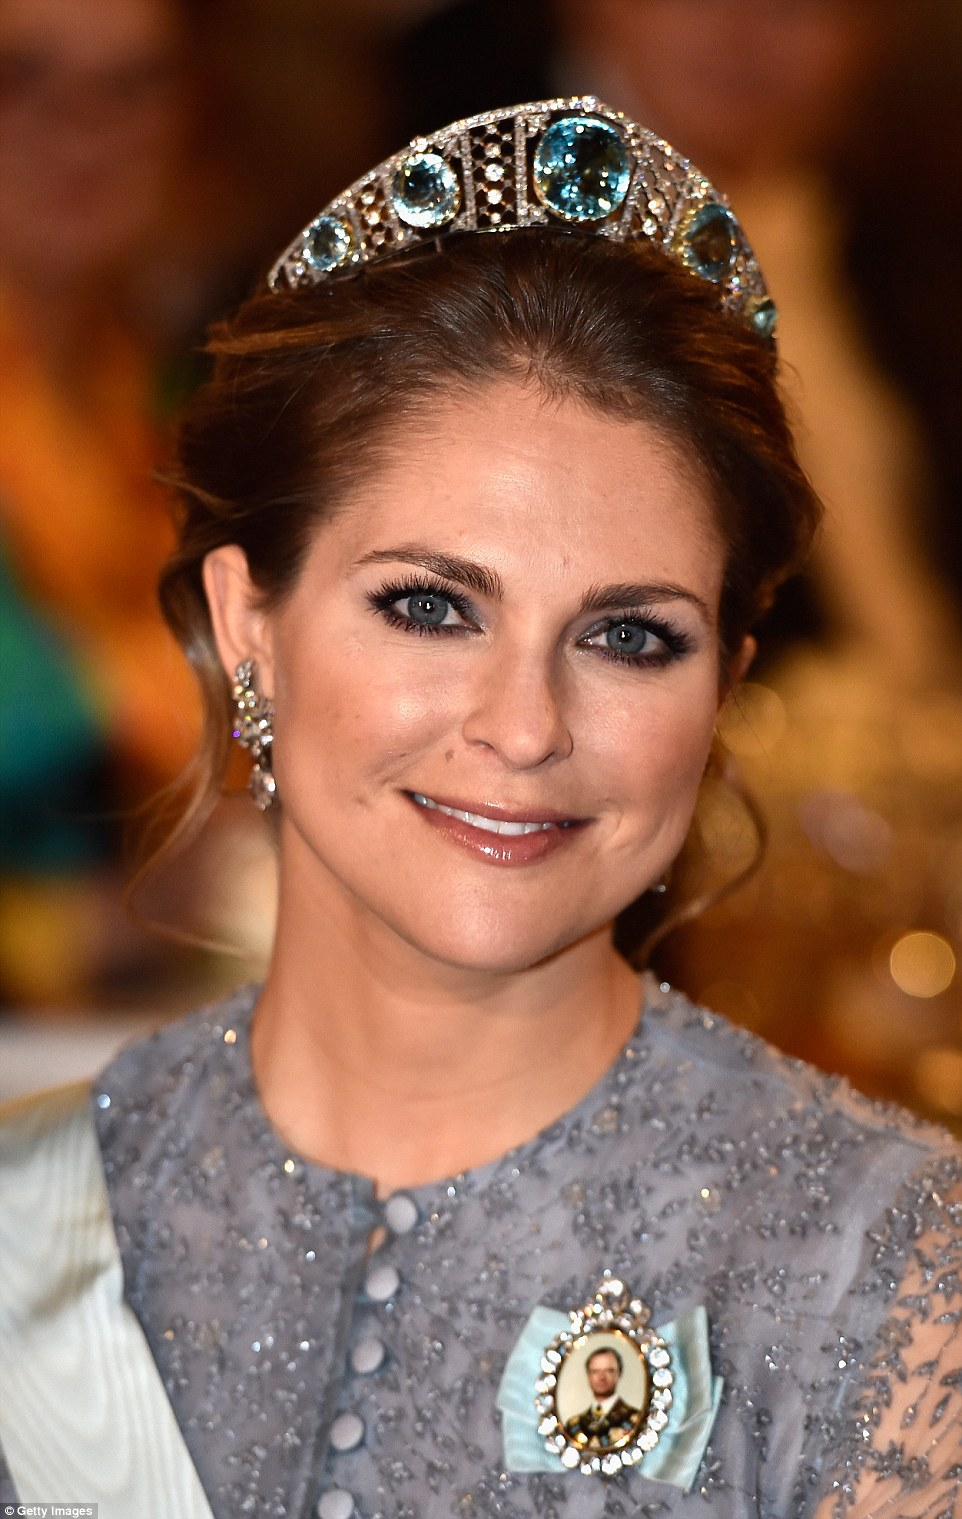 Princess Madeleine smiles for the camera in natural makeup and a chic updo to accentuate her domed tiara with the country's rarely seen Aquamarine Kokoshnik tiara made up of diamond lattices holding five huge aquamarines in place